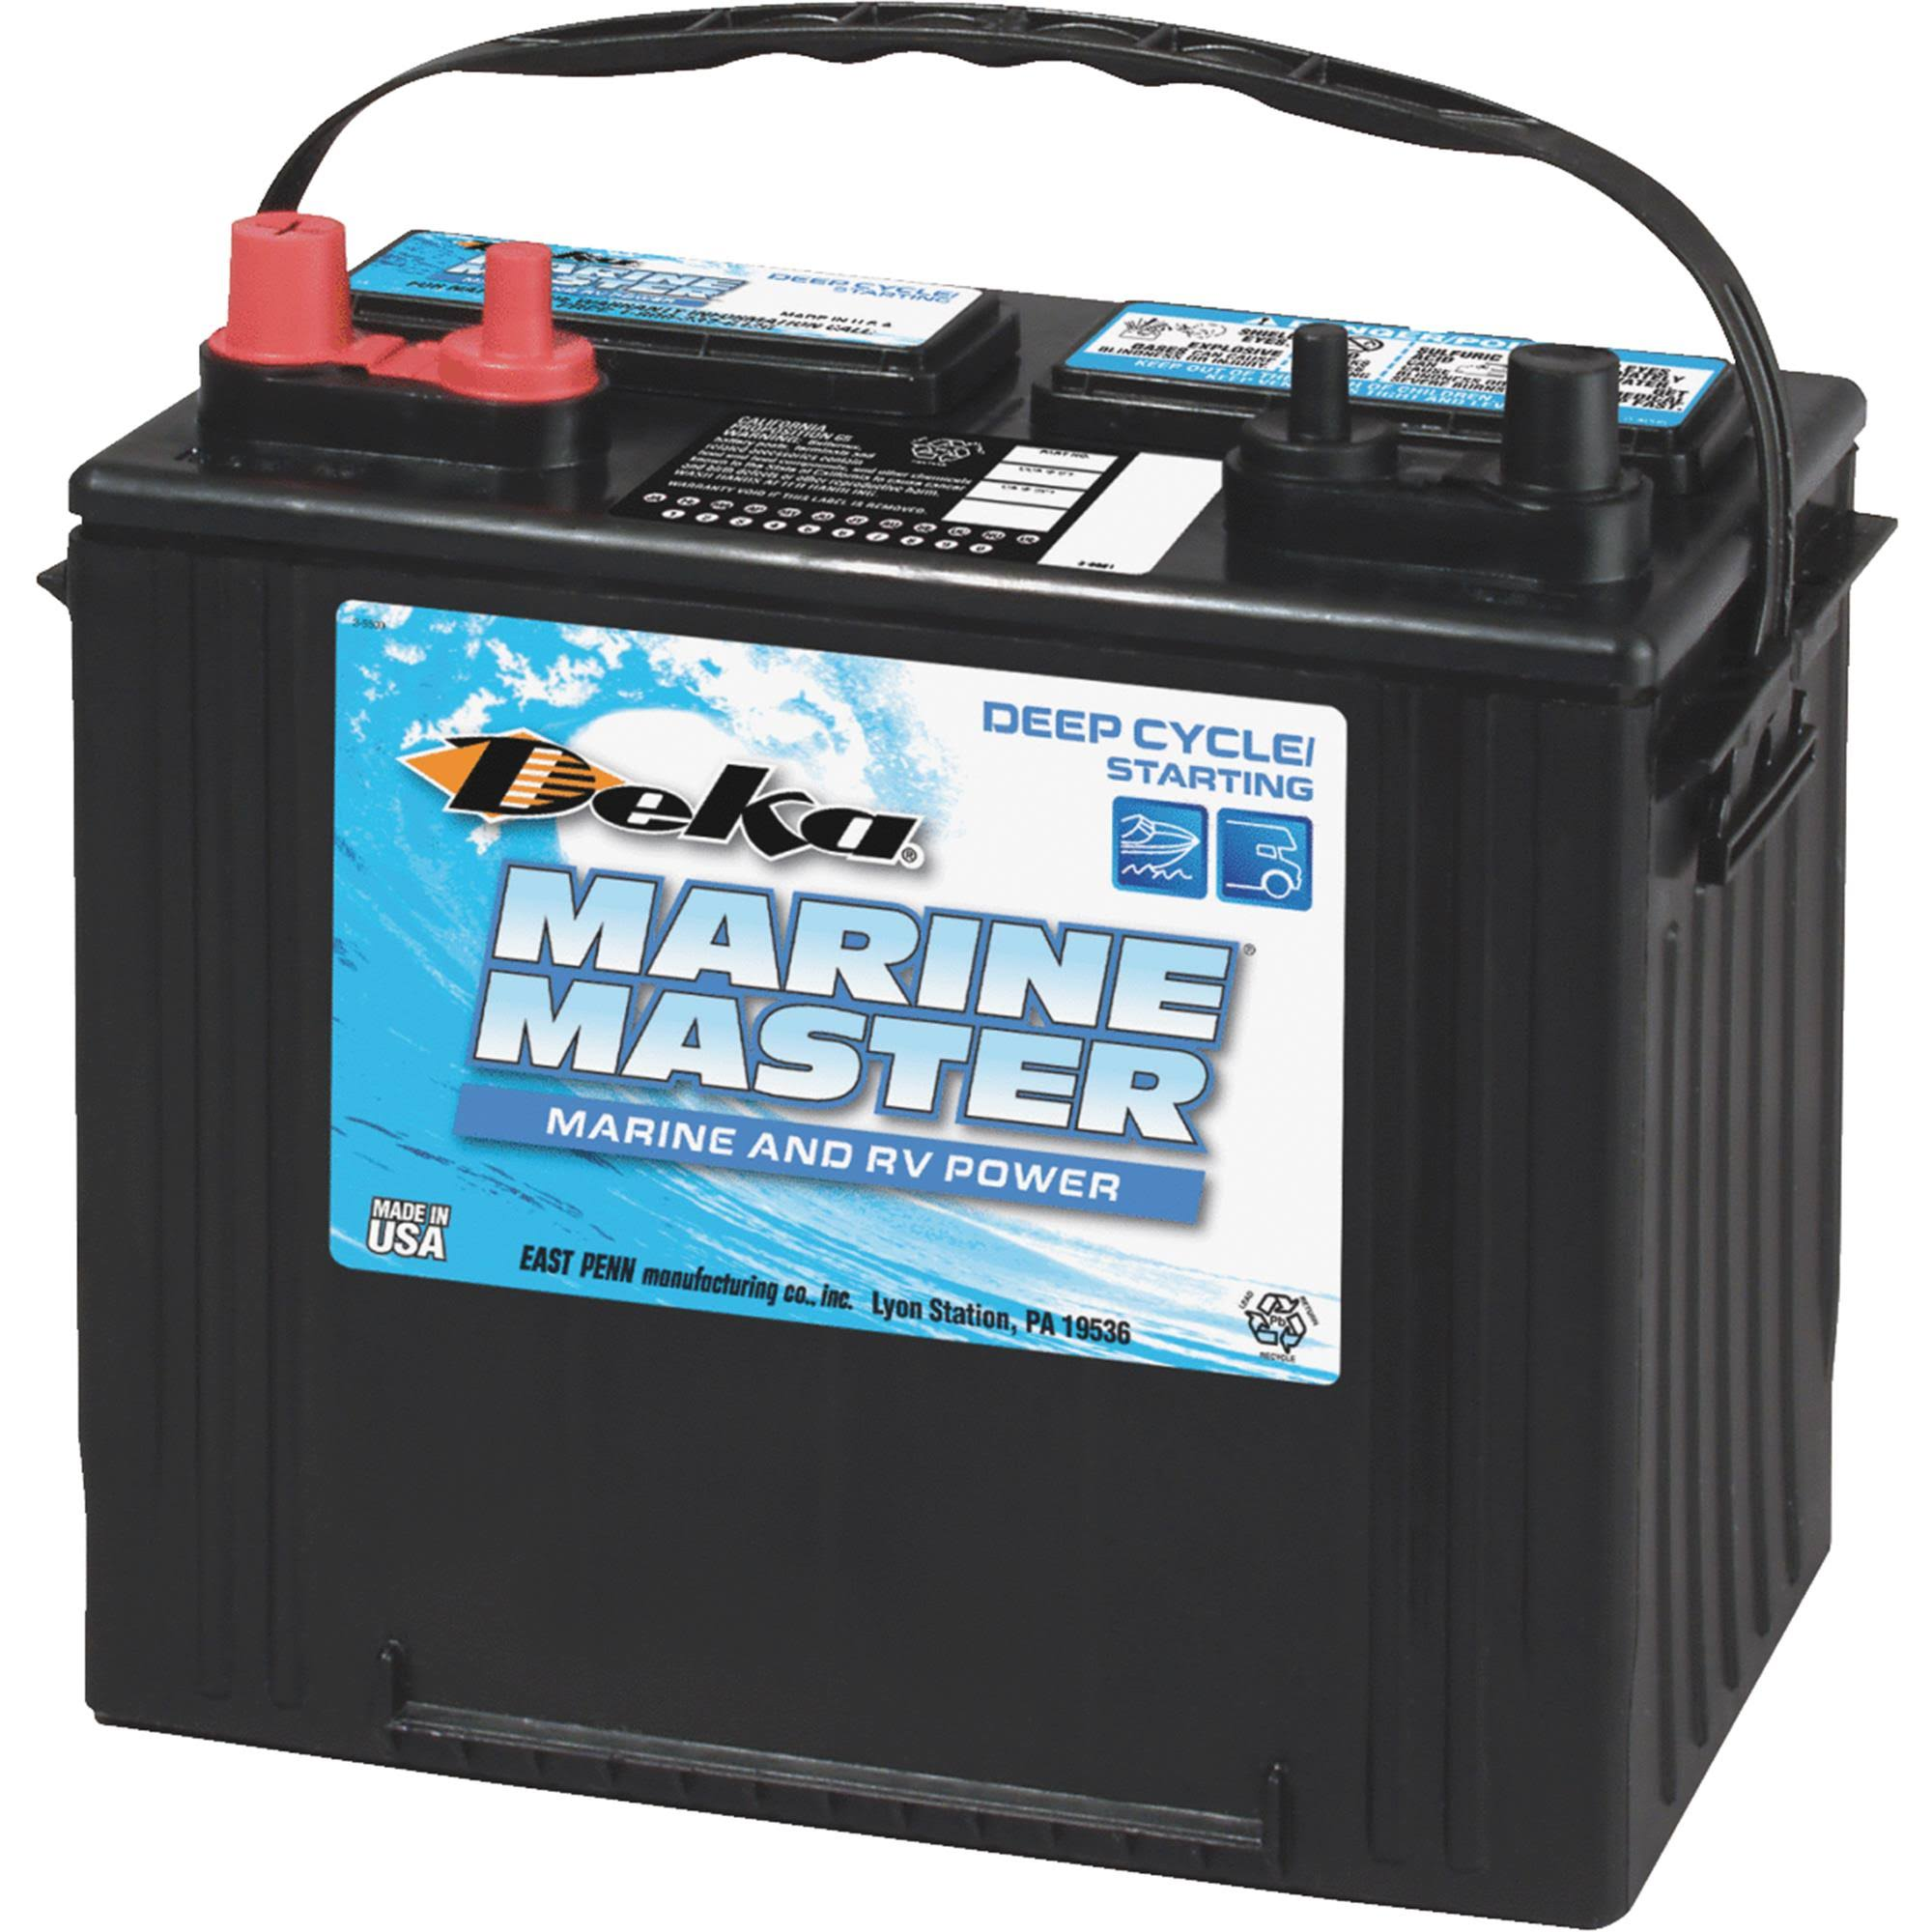 Deka Marine Master Dual Purpose Marine/RV Battery